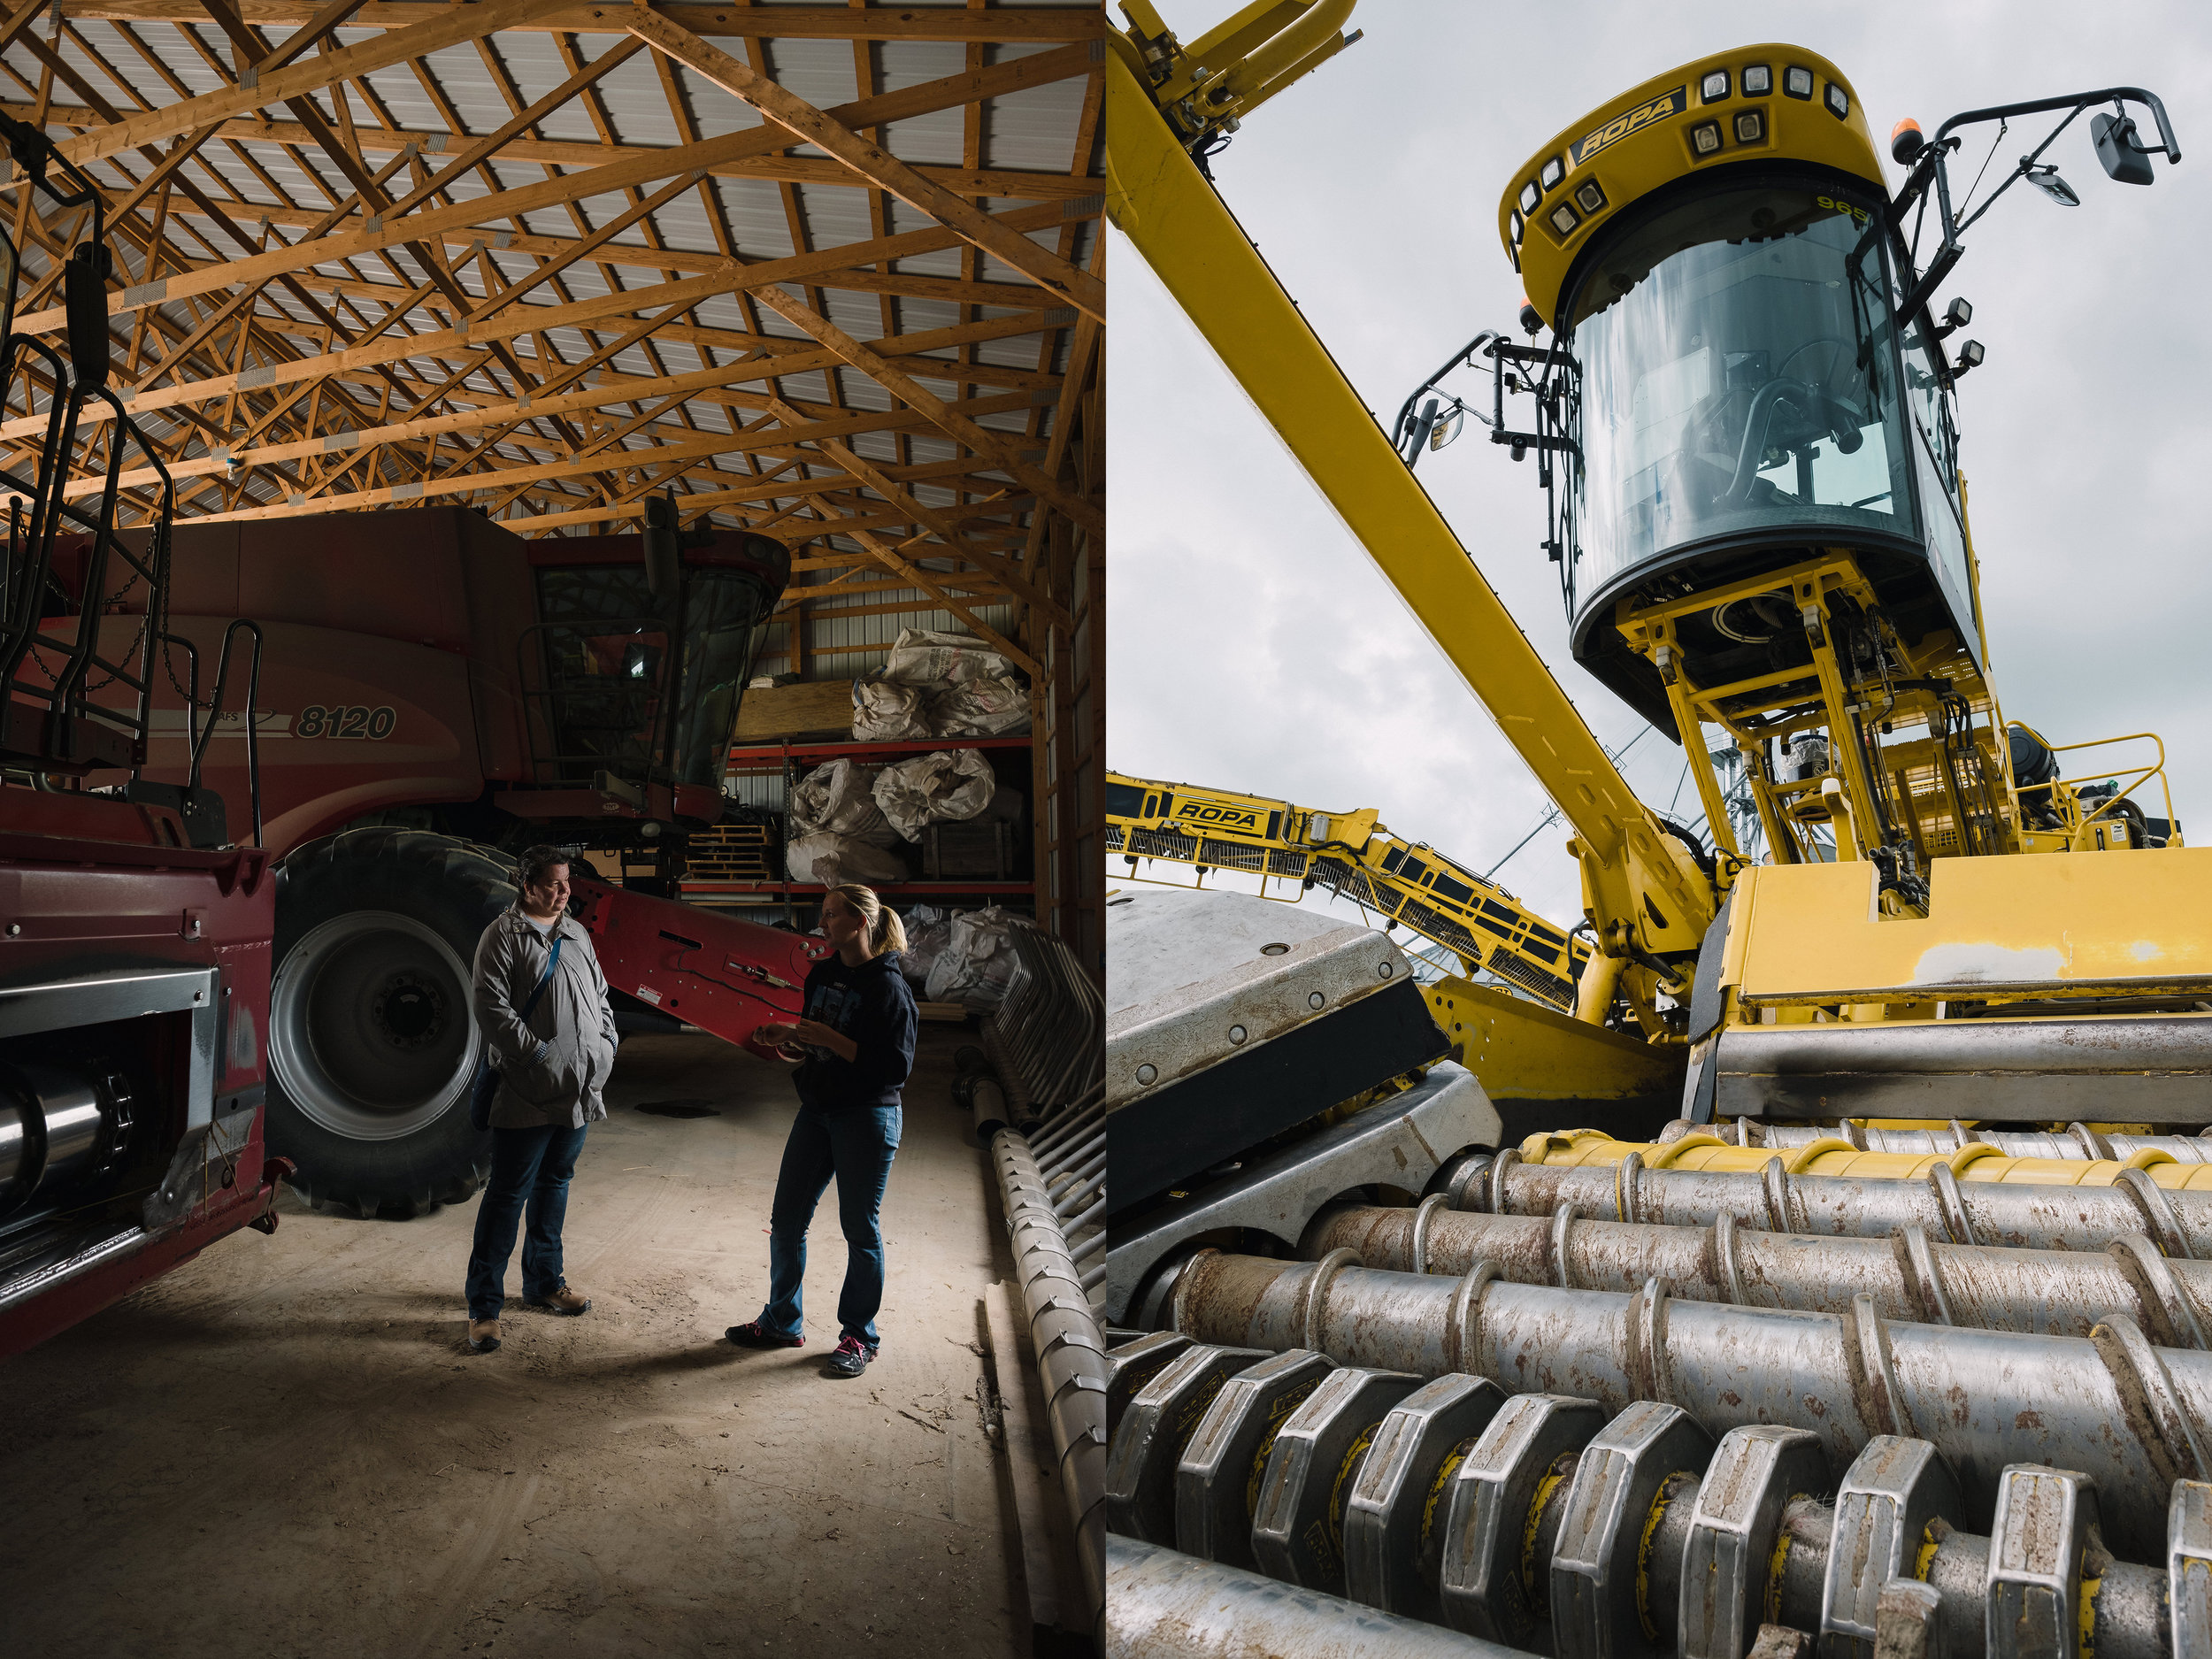 A brief tour of some of the farm equipment. Left: Combines. Right: A German-made Maus, designed for sugar beet harvesting.